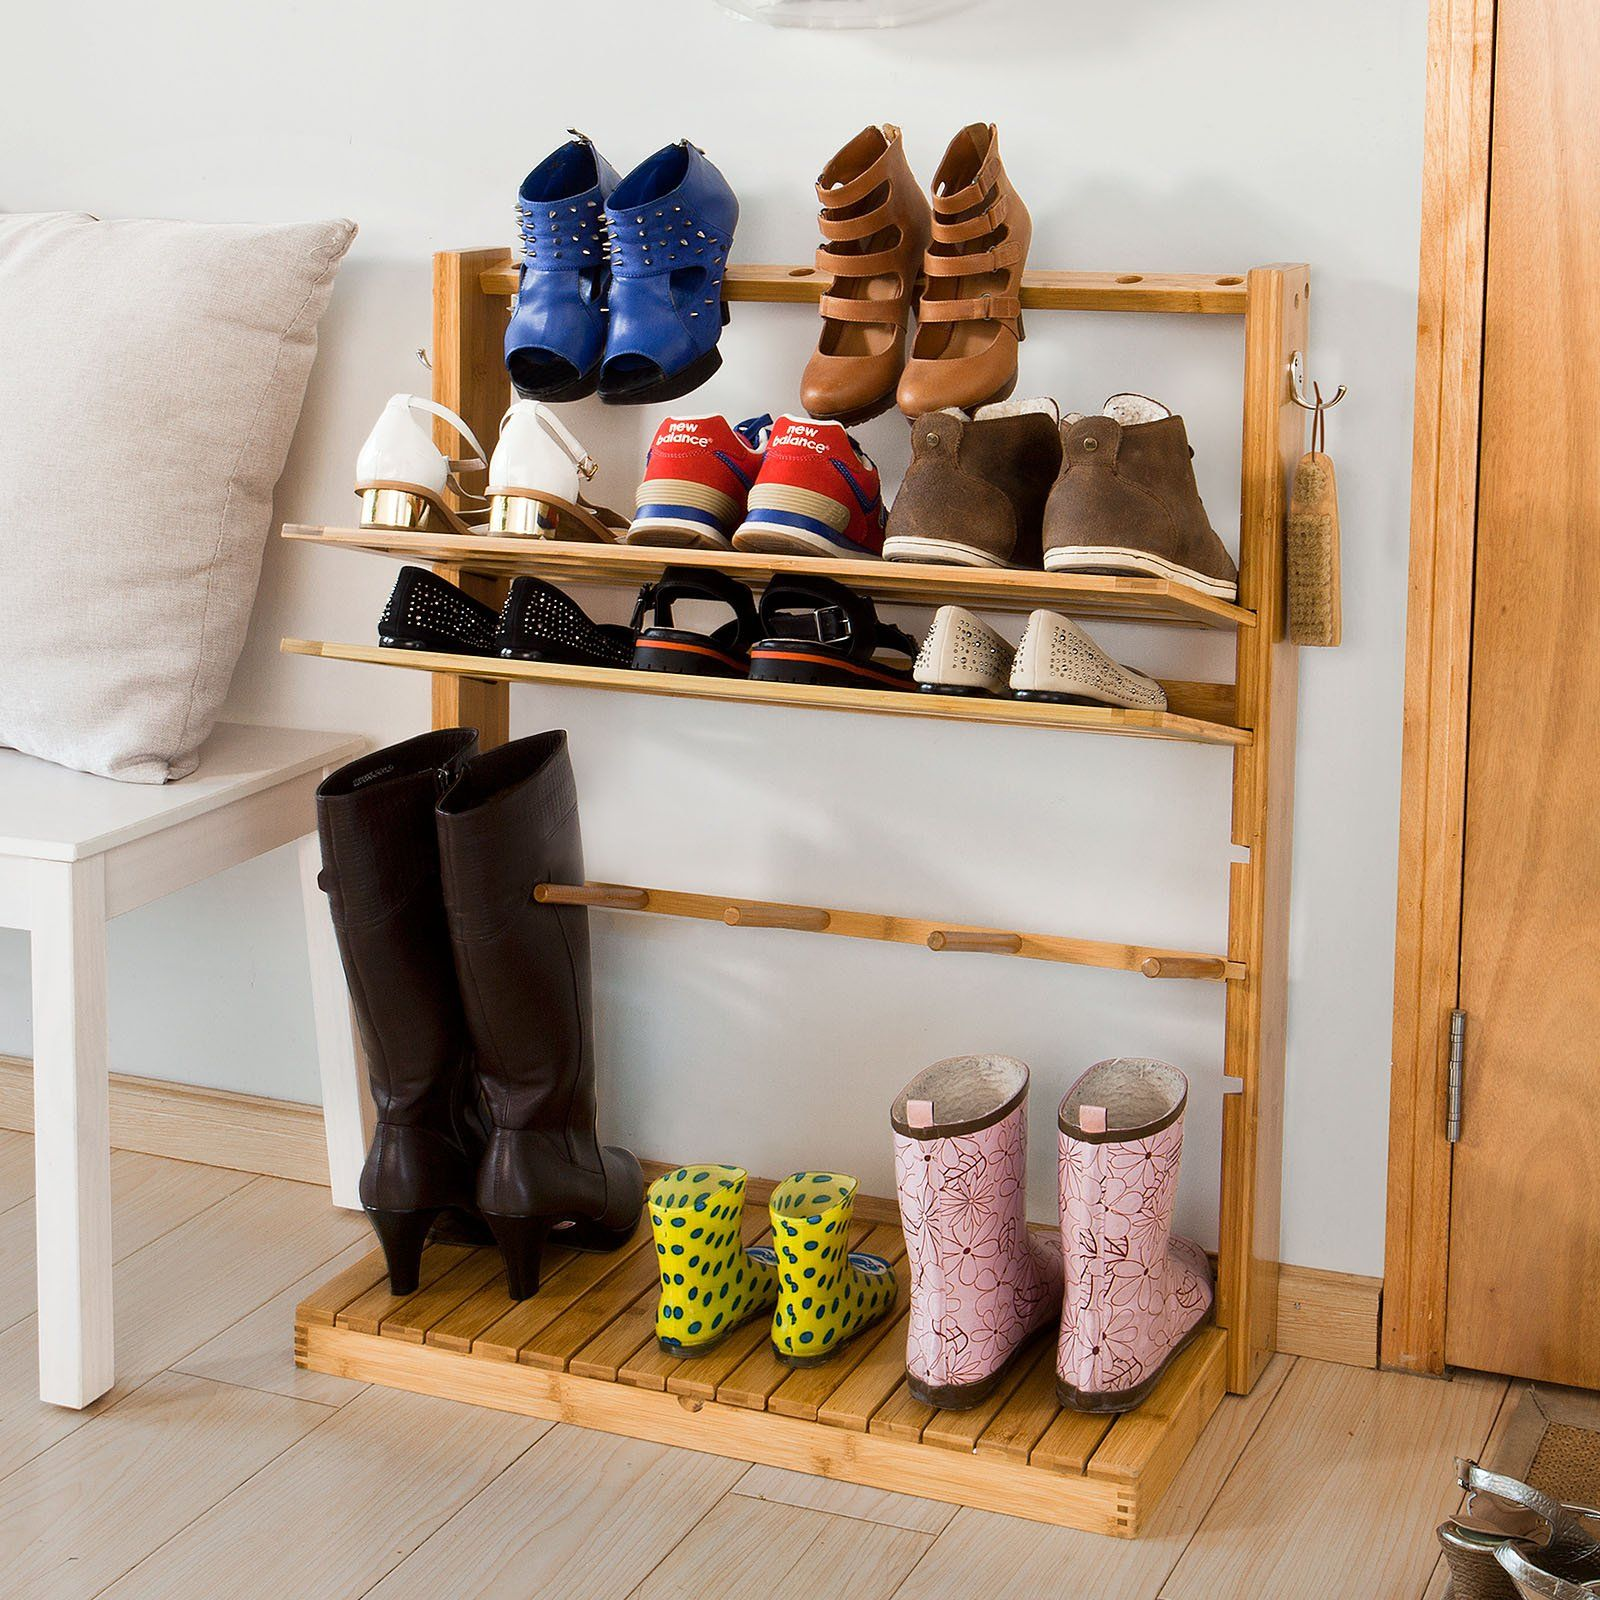 A Nifty Bamboo Shoe Rack With Adjustable Shelves, Space For Tall Boots,  Provision For High Heels And A Concealed Storage Compartment.